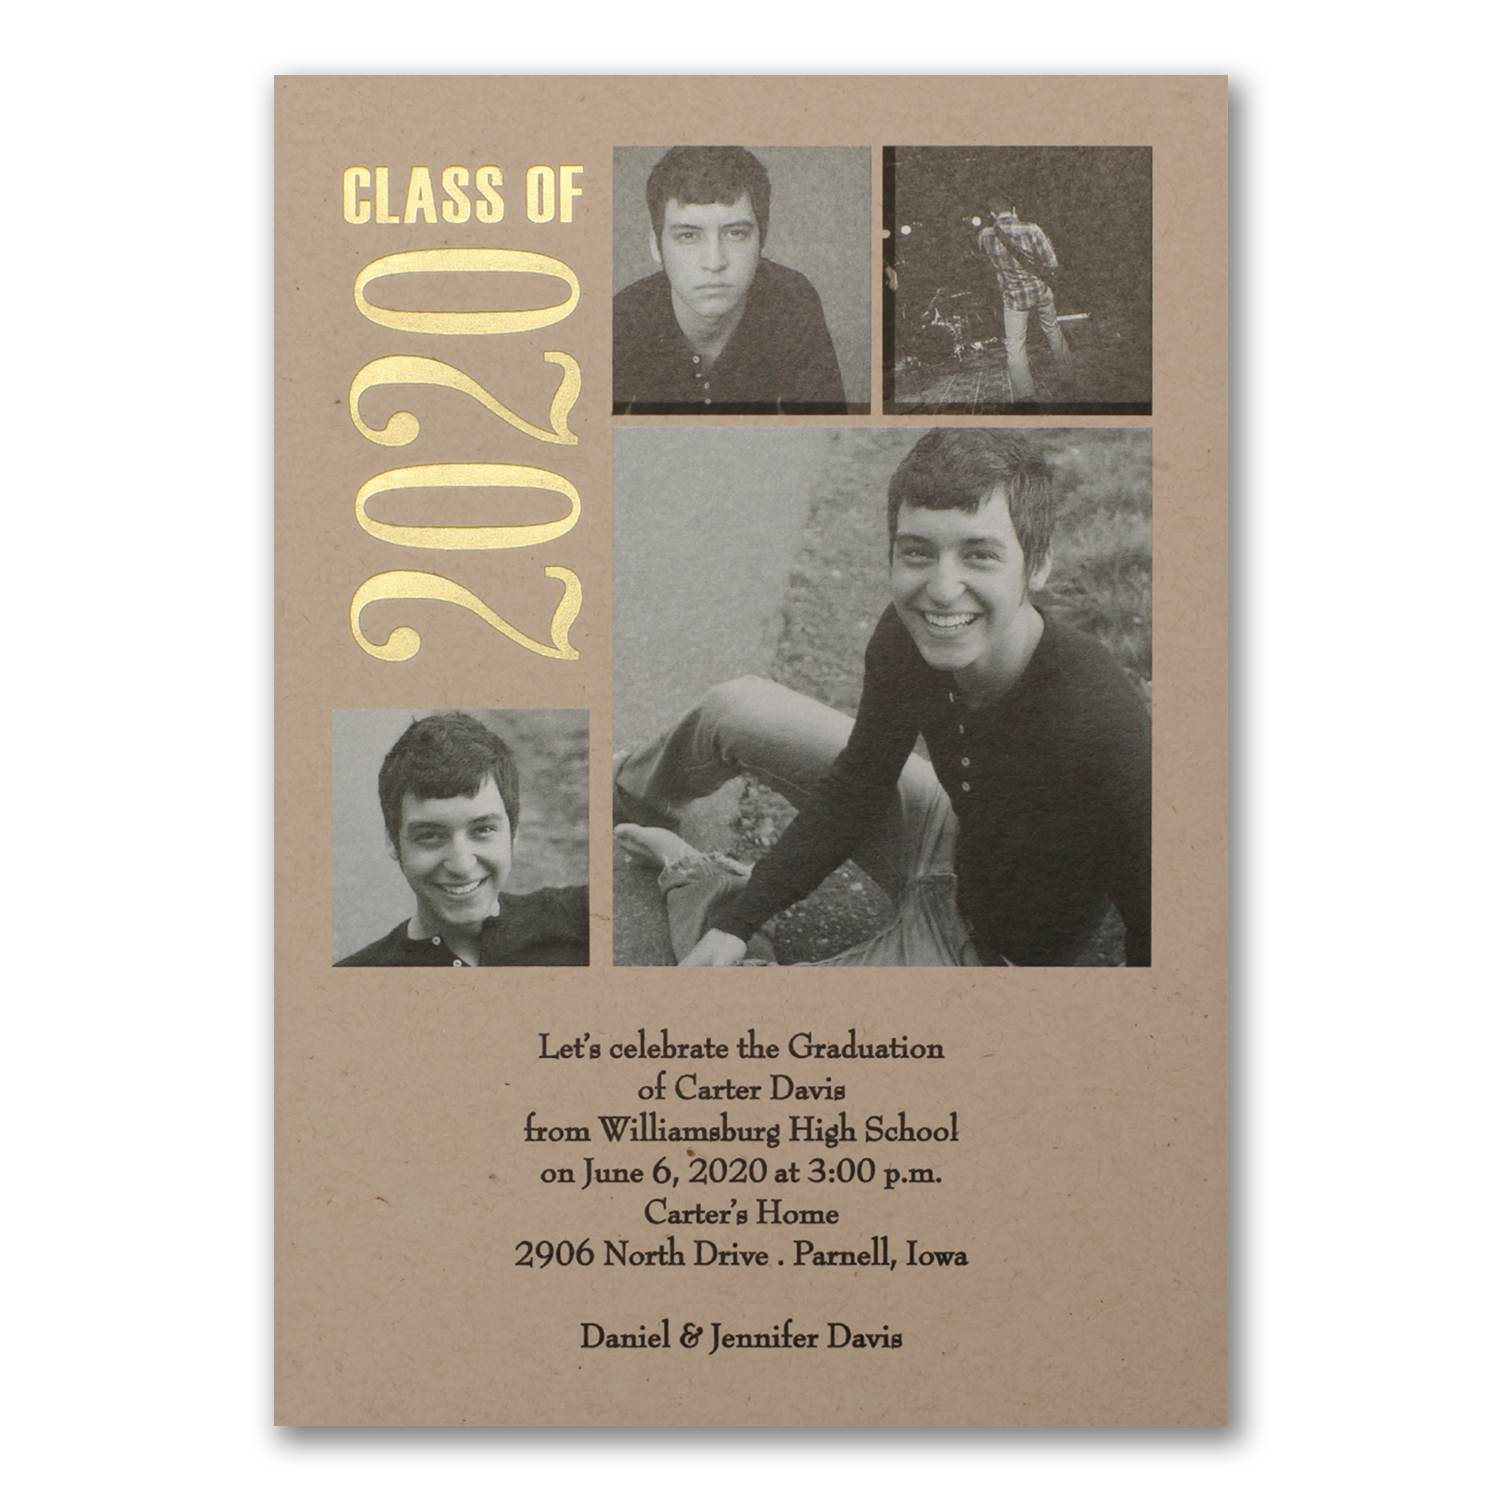 time to shine photo collage gold foil graduation announcement